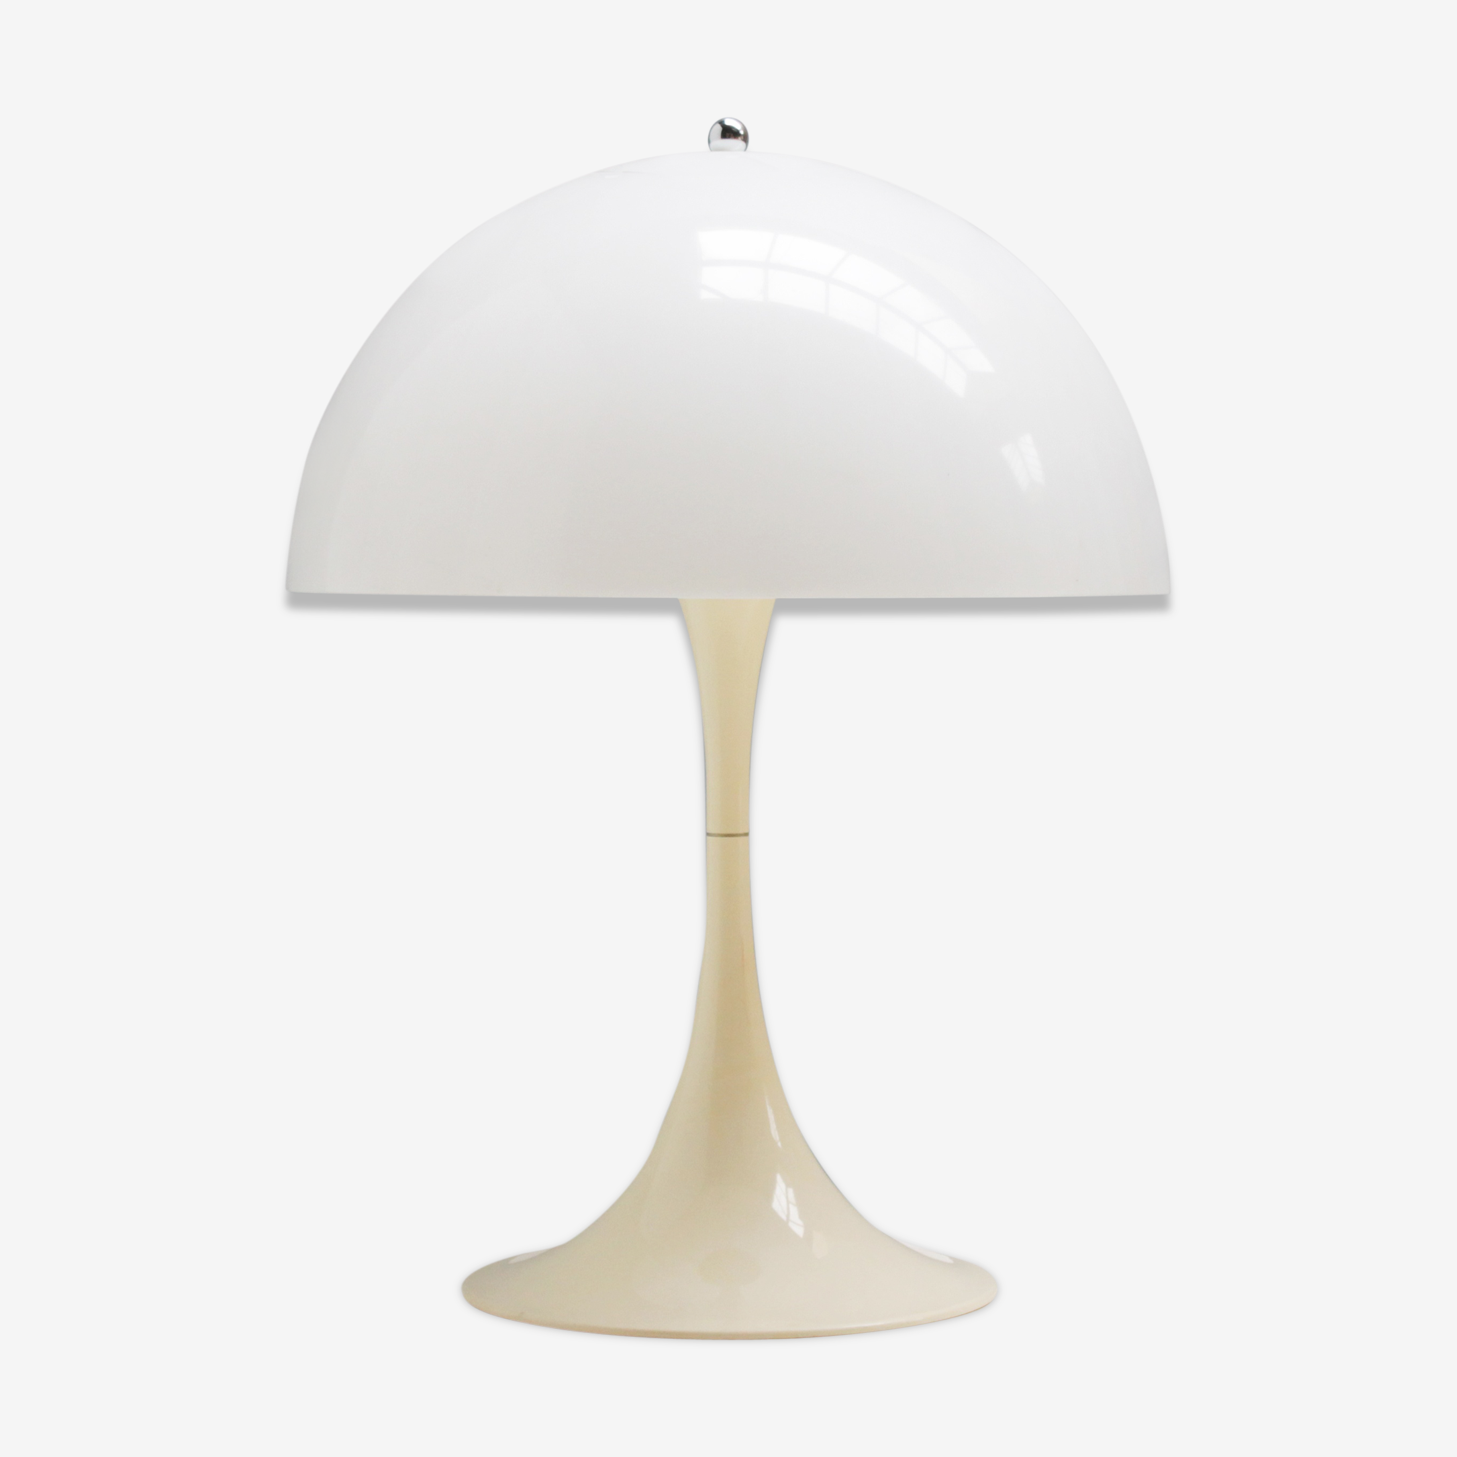 Lampe de table Panthella de Verner Panton Danemark